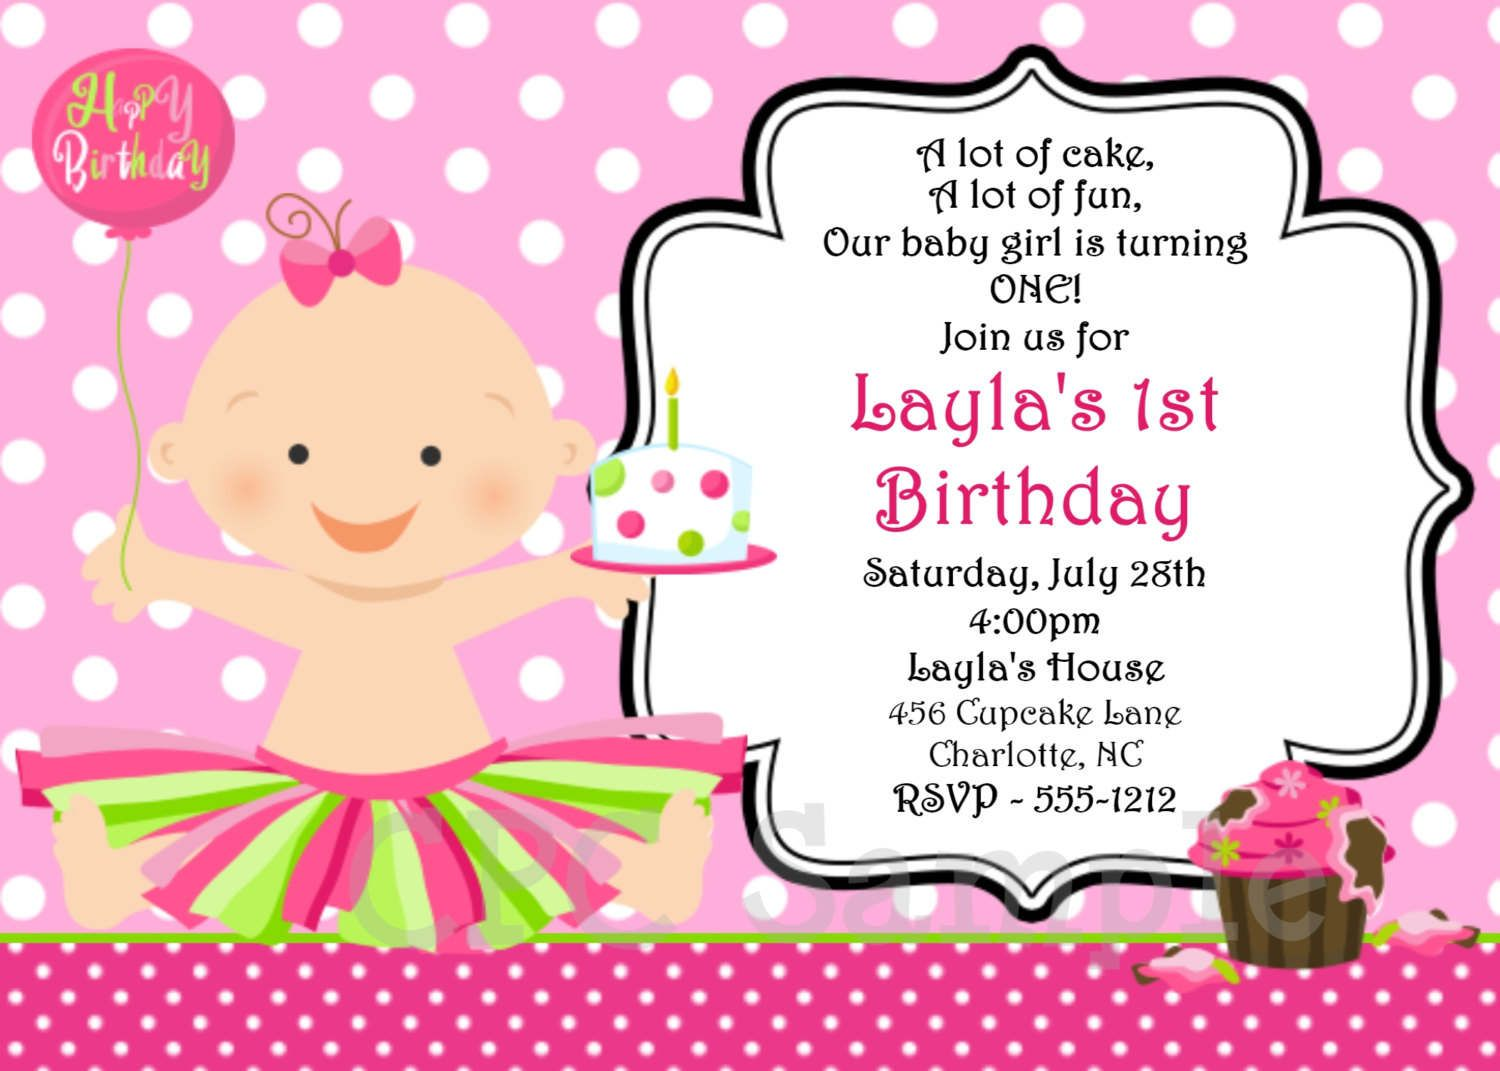 birthday invites free birthday invitation maker images downloads, Birthday invitations